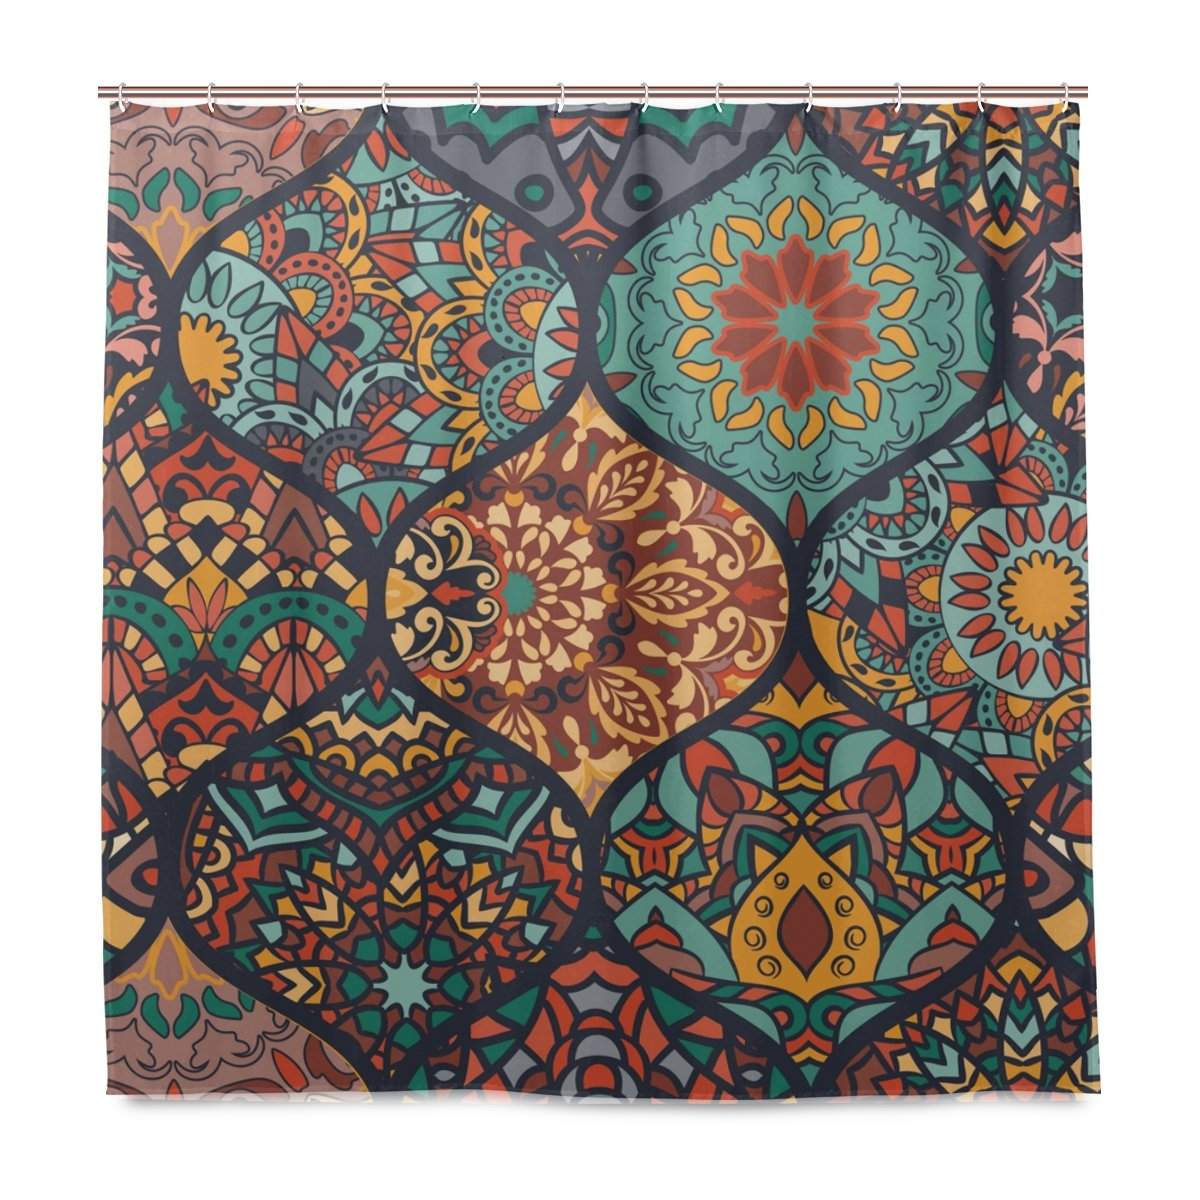 Mnsruu Shower Curtains With Hooks Colorful Moroccan Style Pattern Printed Bathroom Decor Polyester Fabric Mildew Resistant Waterproof, 72x72 Inches